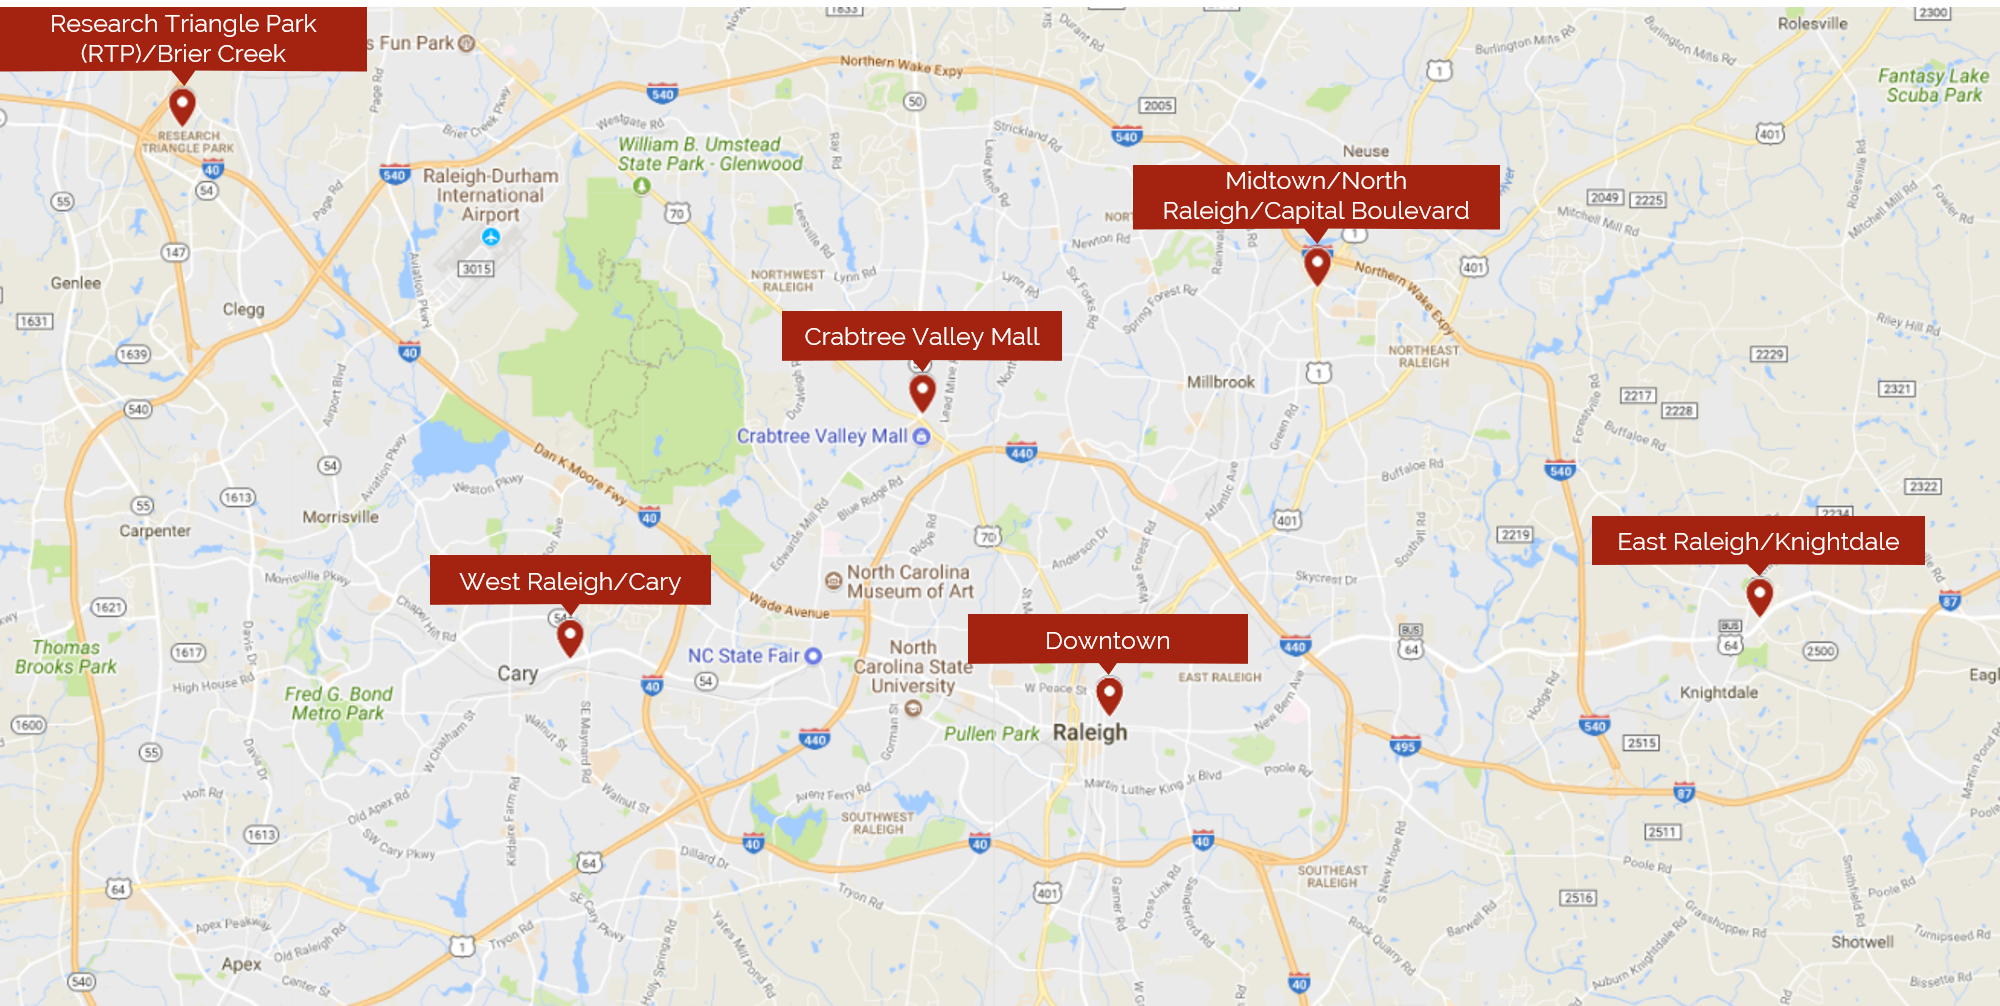 Ibm Rtp Campus Map.Hvs Market Pulse Raleigh Nc